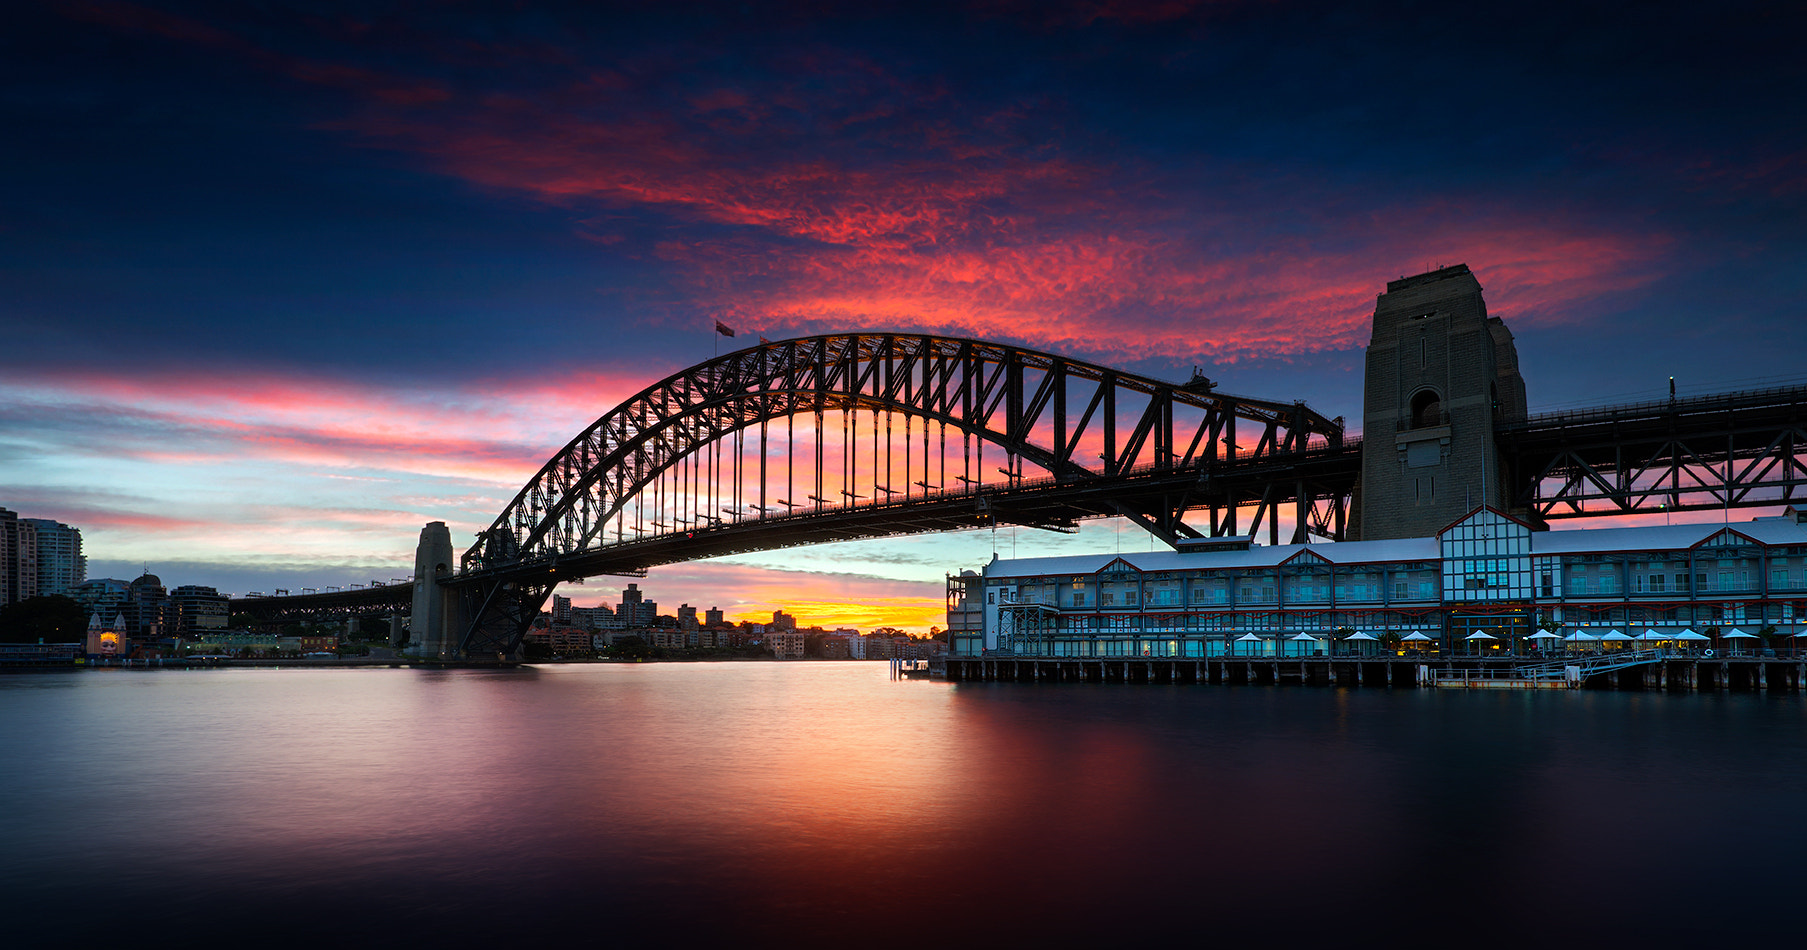 Photograph Sydney Habour bridge #3 by Goff Kitsawad on 500px